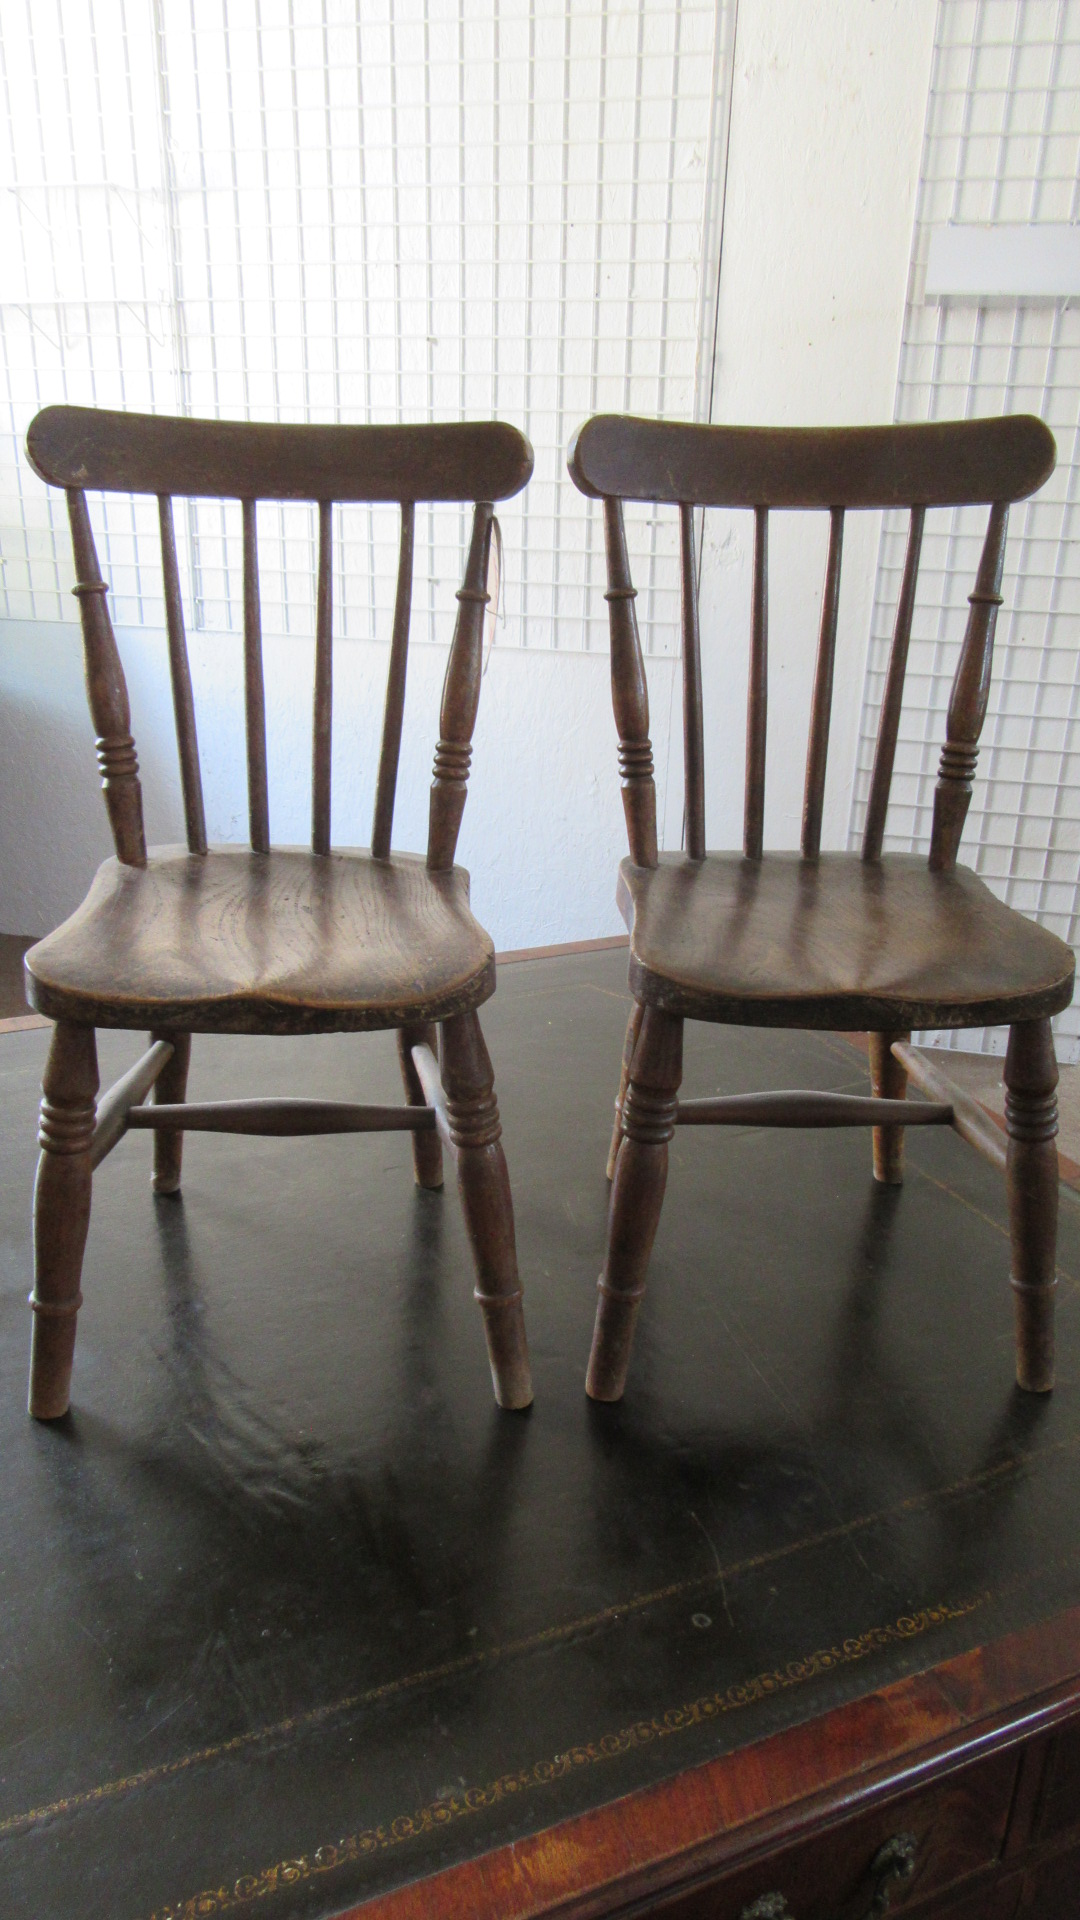 PAIR OF ANTIQUE CHILDRENS WINDSOR CHAIRS